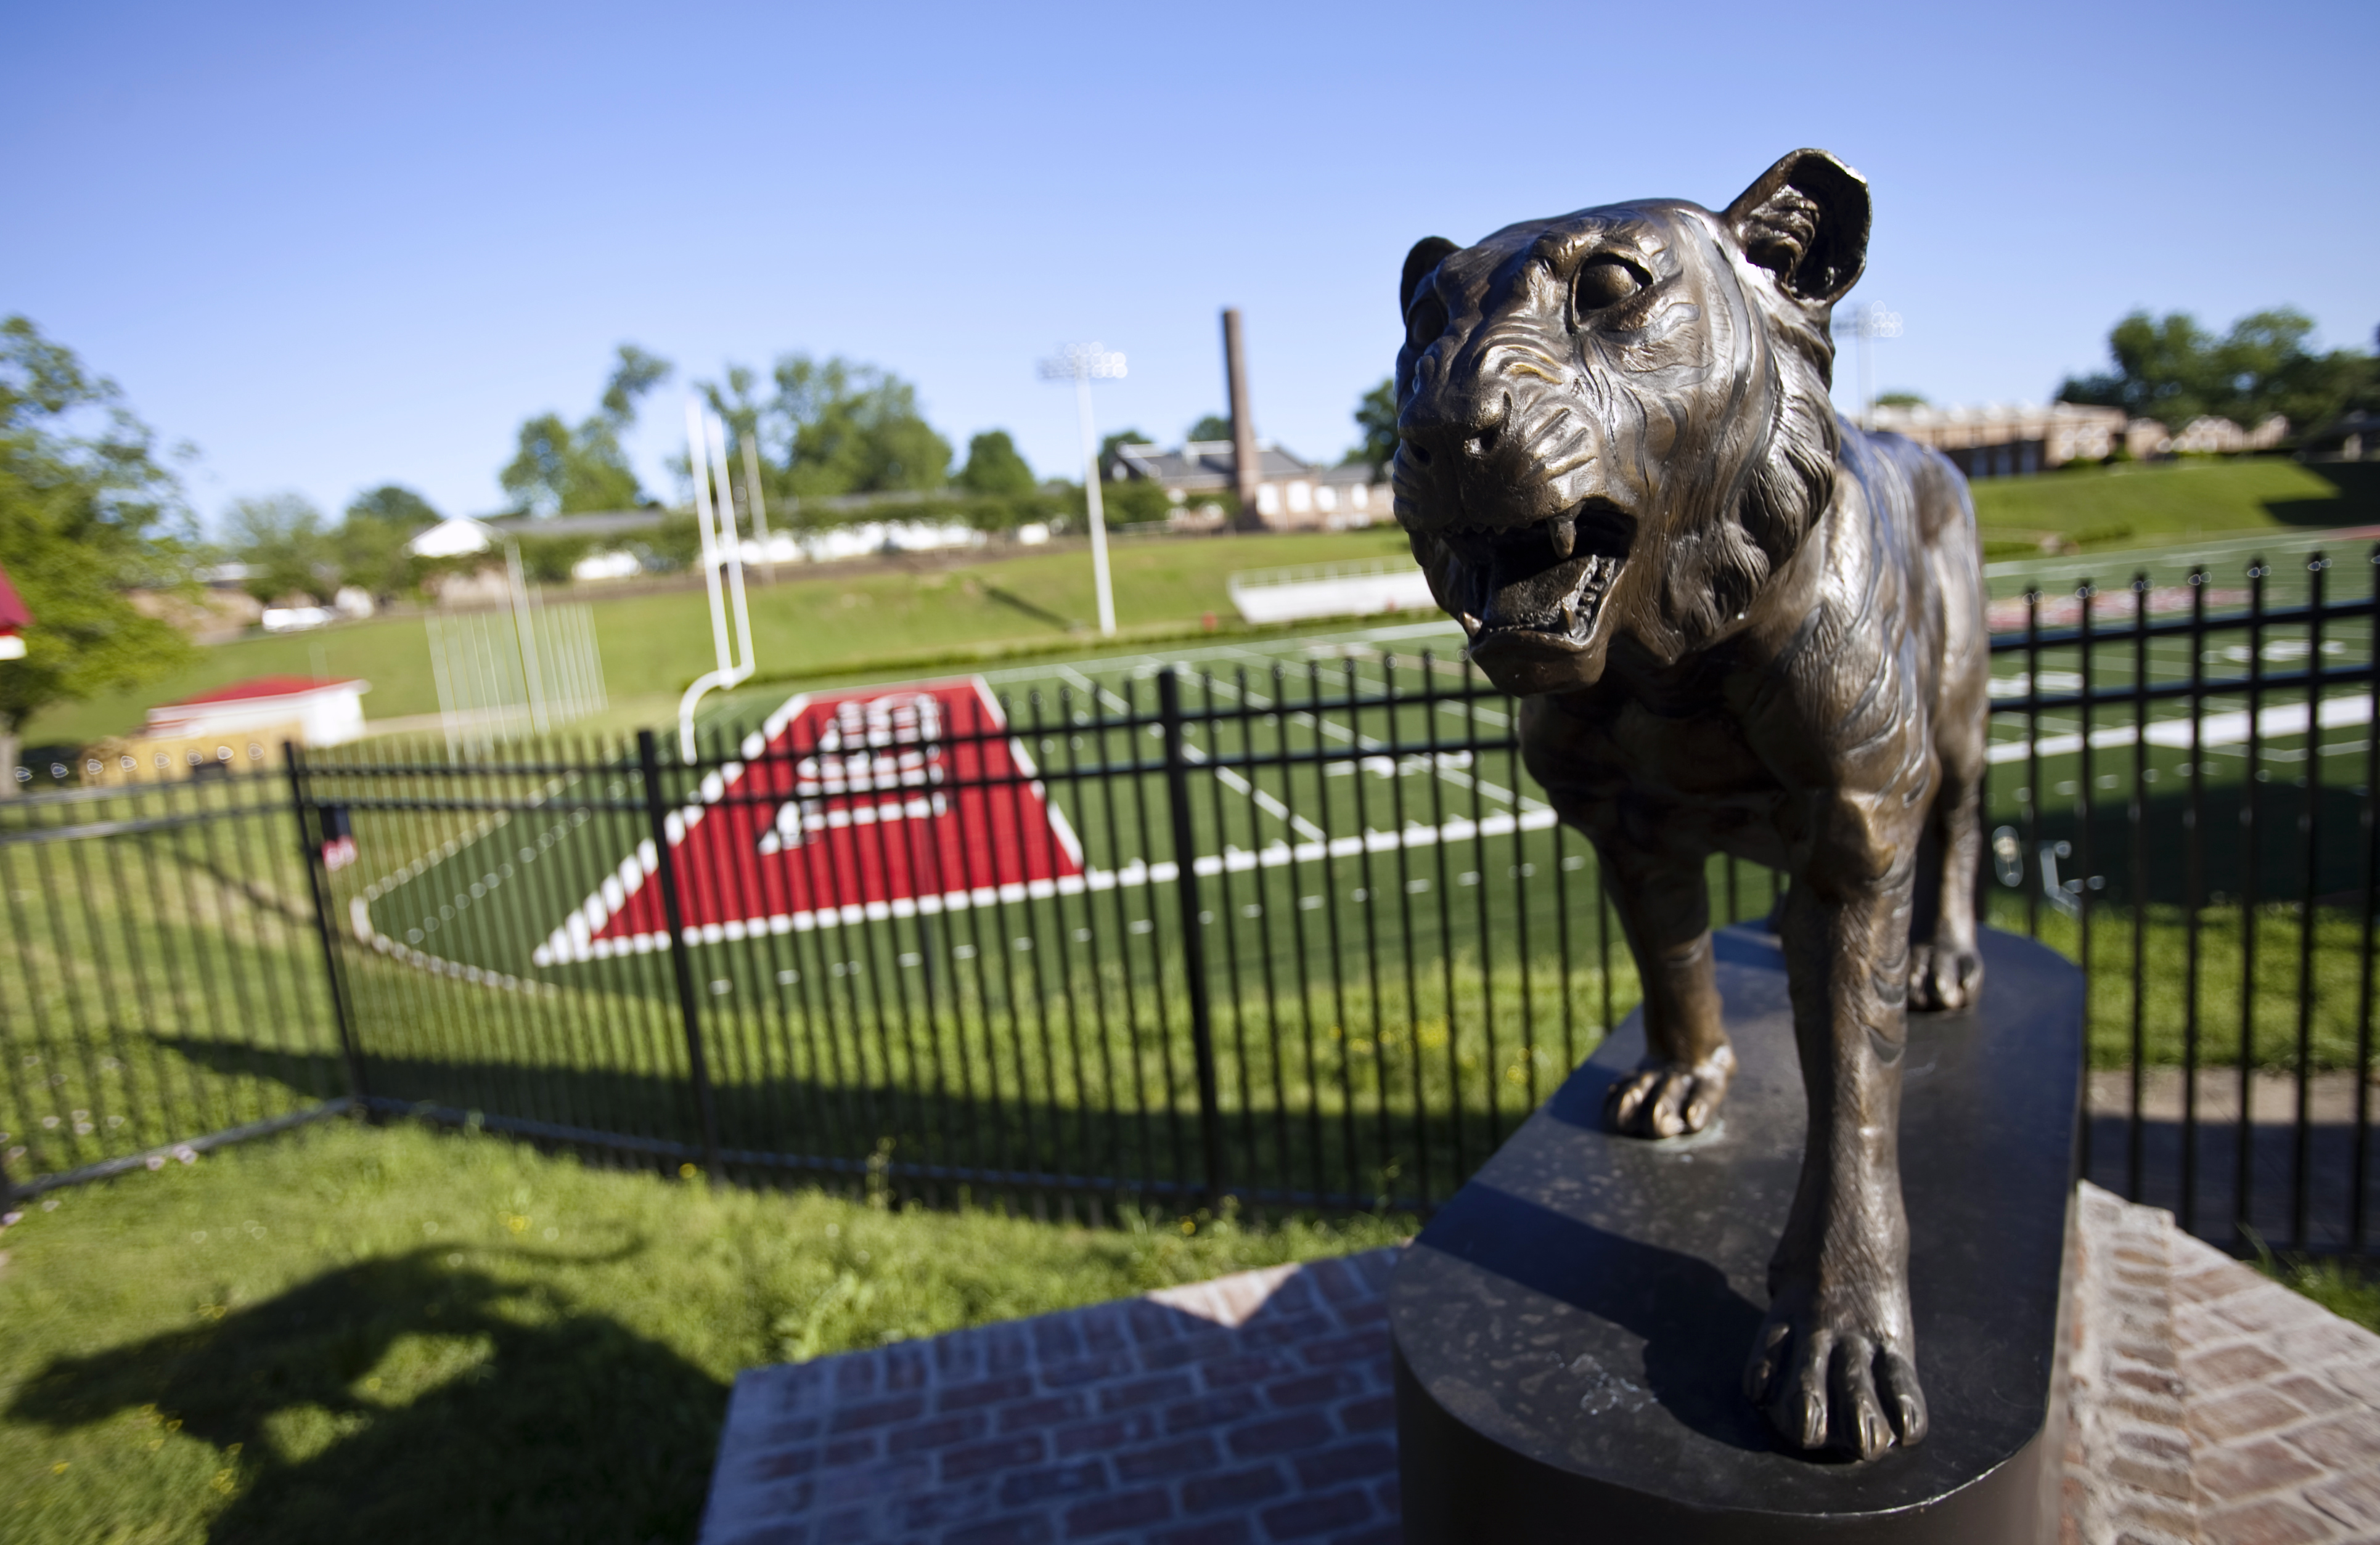 Bronze Tiger statue by football field